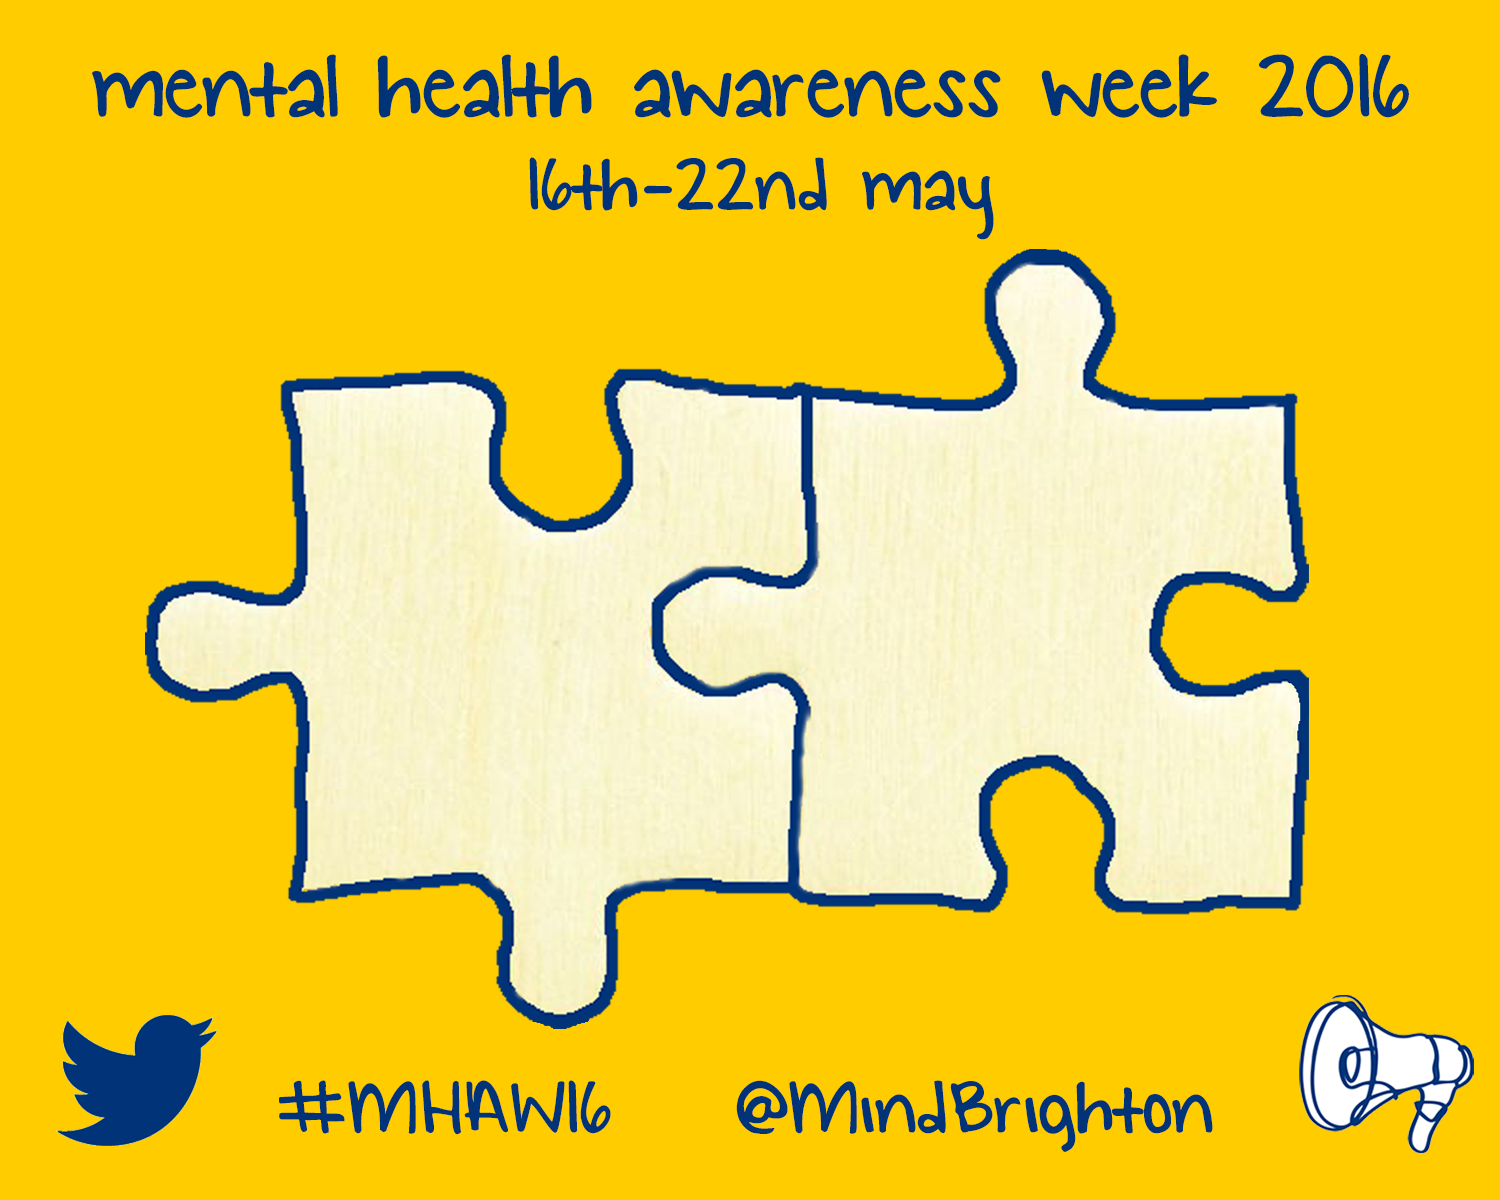 About Mental Health Awareness Week And Promote Better You Can Download A Template Of These Jigsaw Puzzles Fill In Your Message